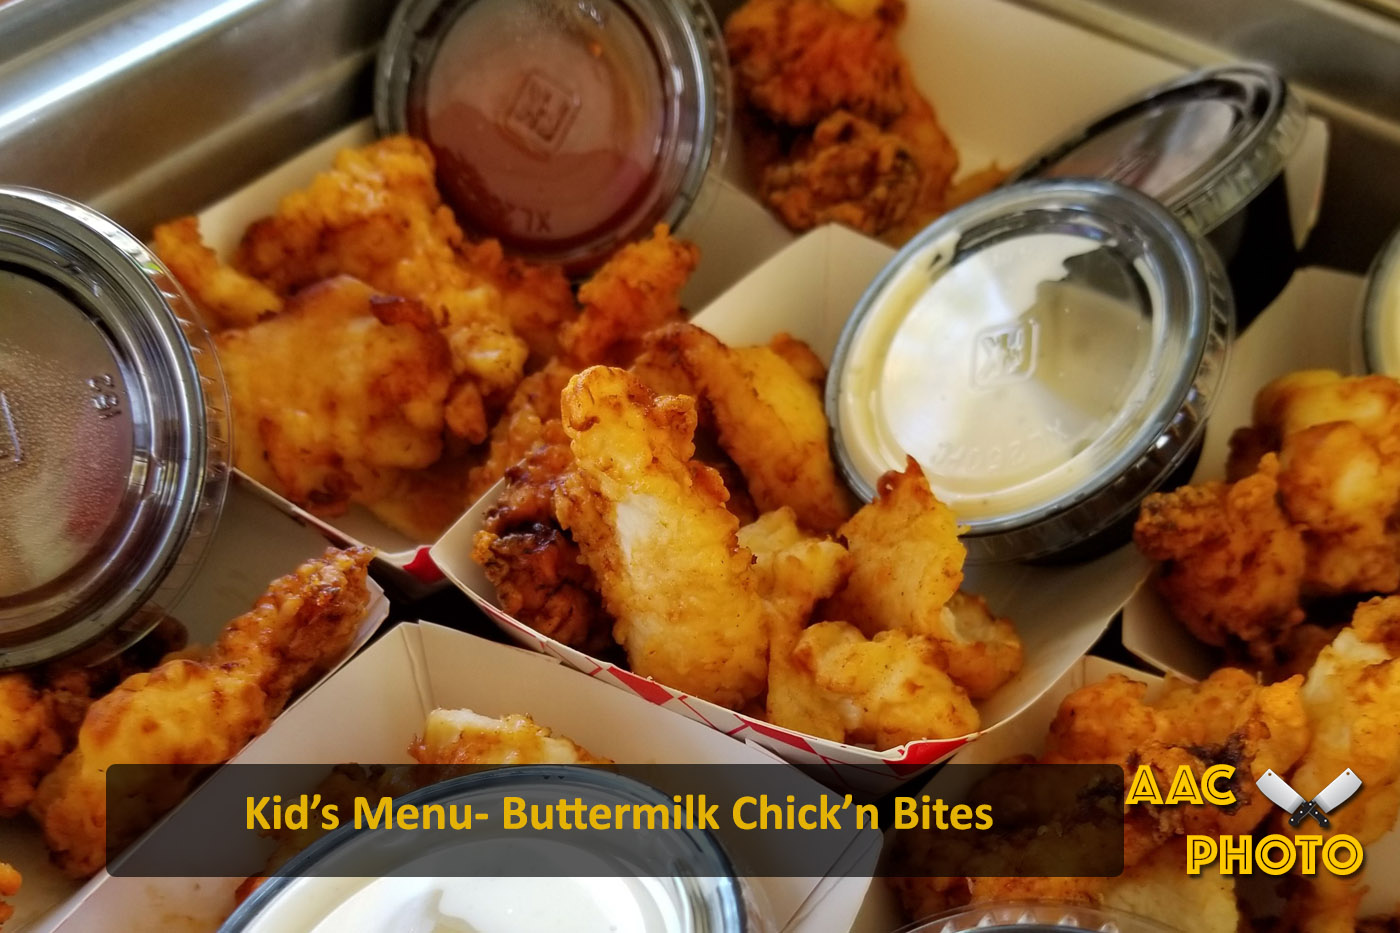 Buttermilk Chick'n Bites